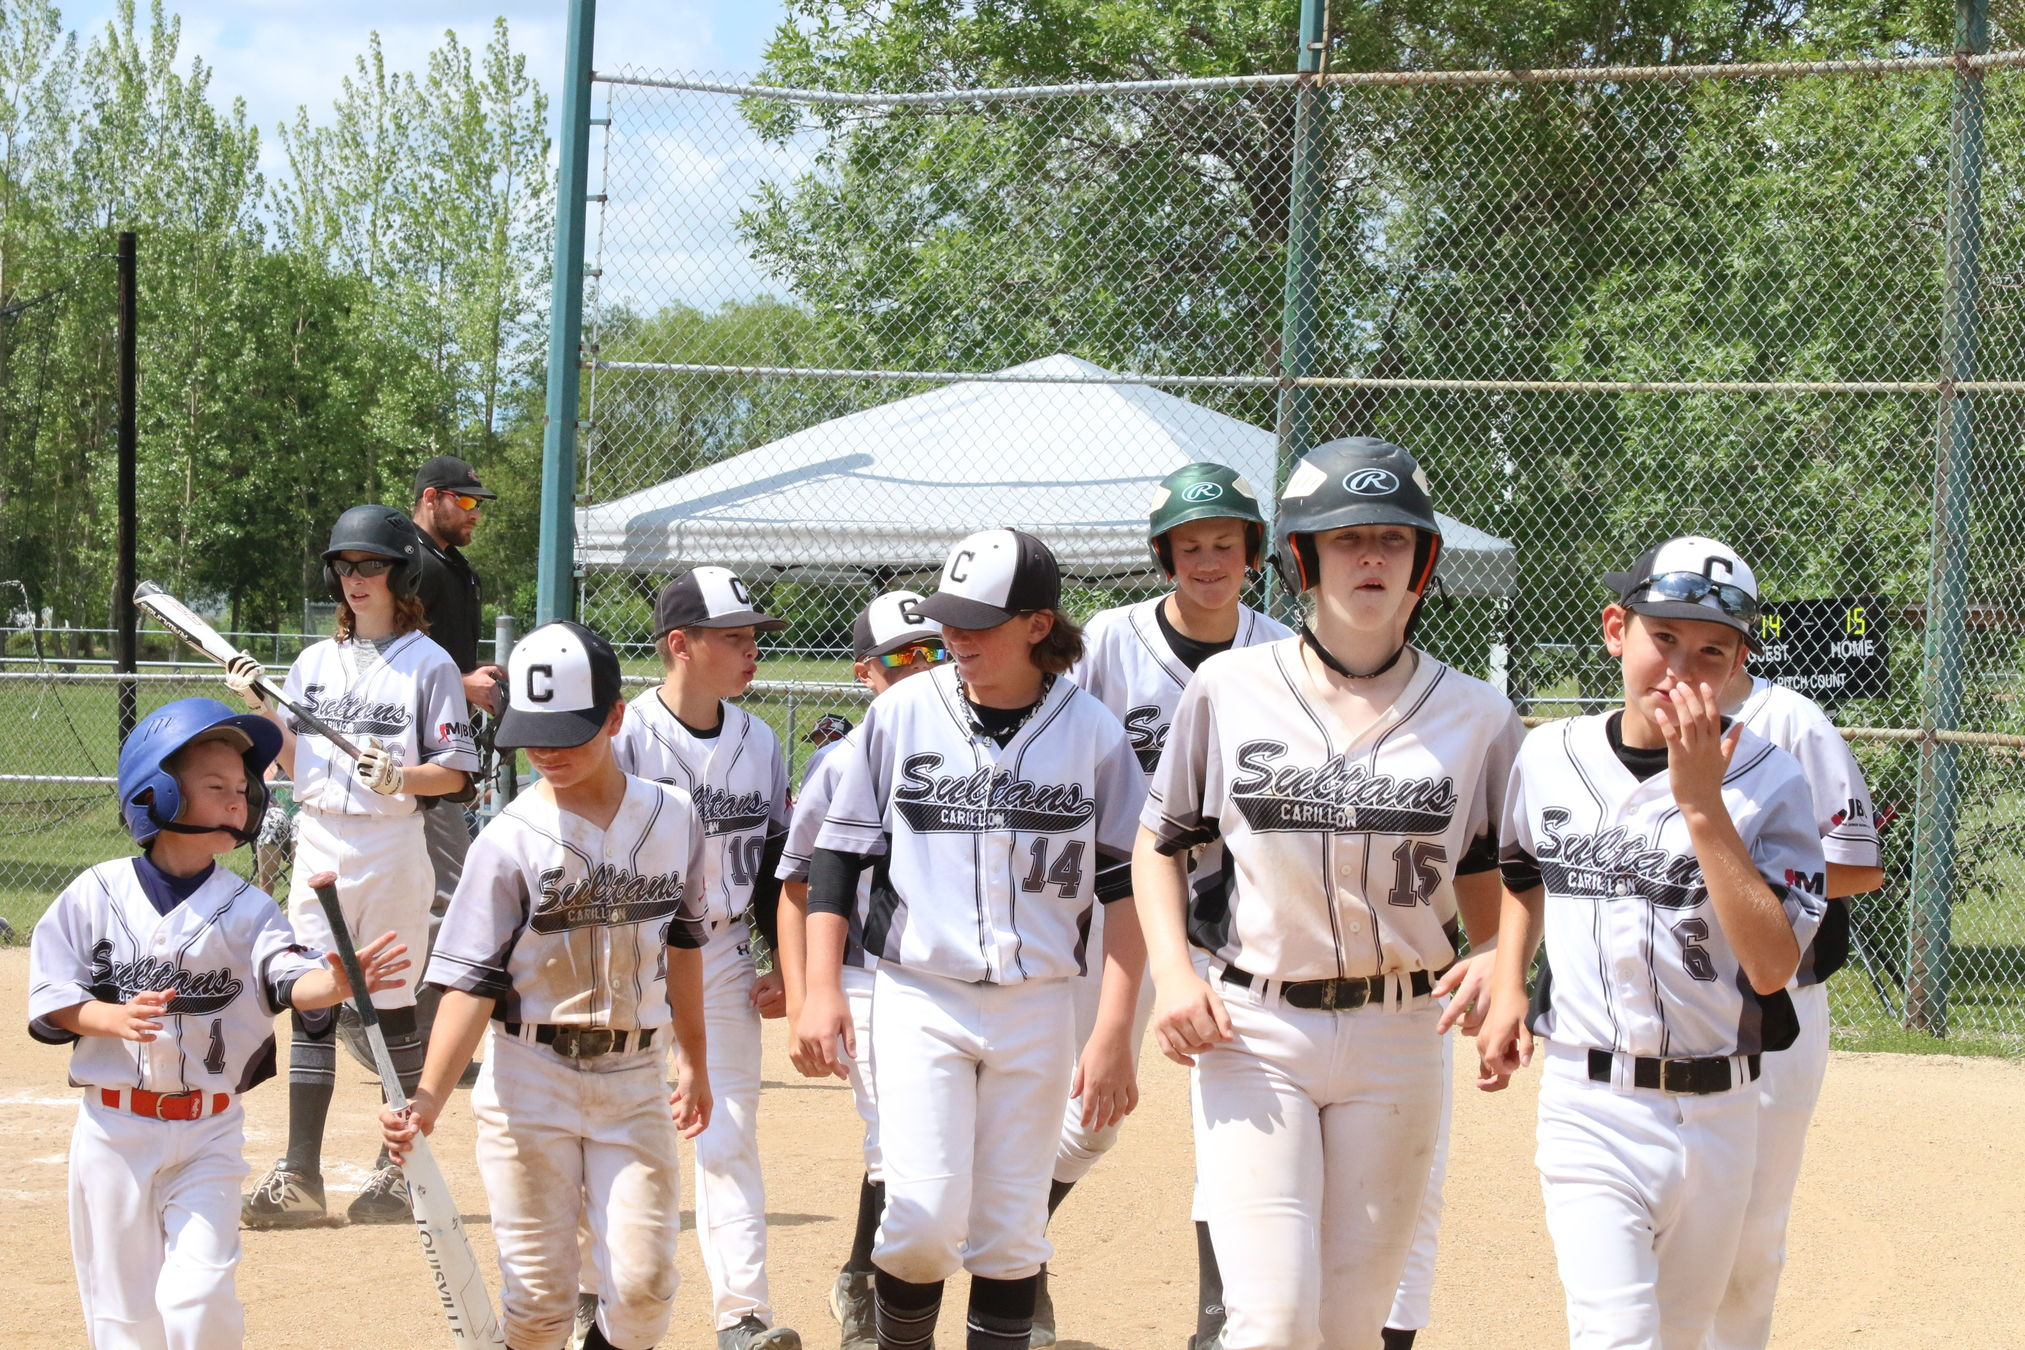 The Carillon Sultans finished third out of eight teams at the 13U 'AAA' provincial qualifier this weekend at Ile des Chenes to advance to the provincial championships, Aug. 2-4 in Winnipeg.